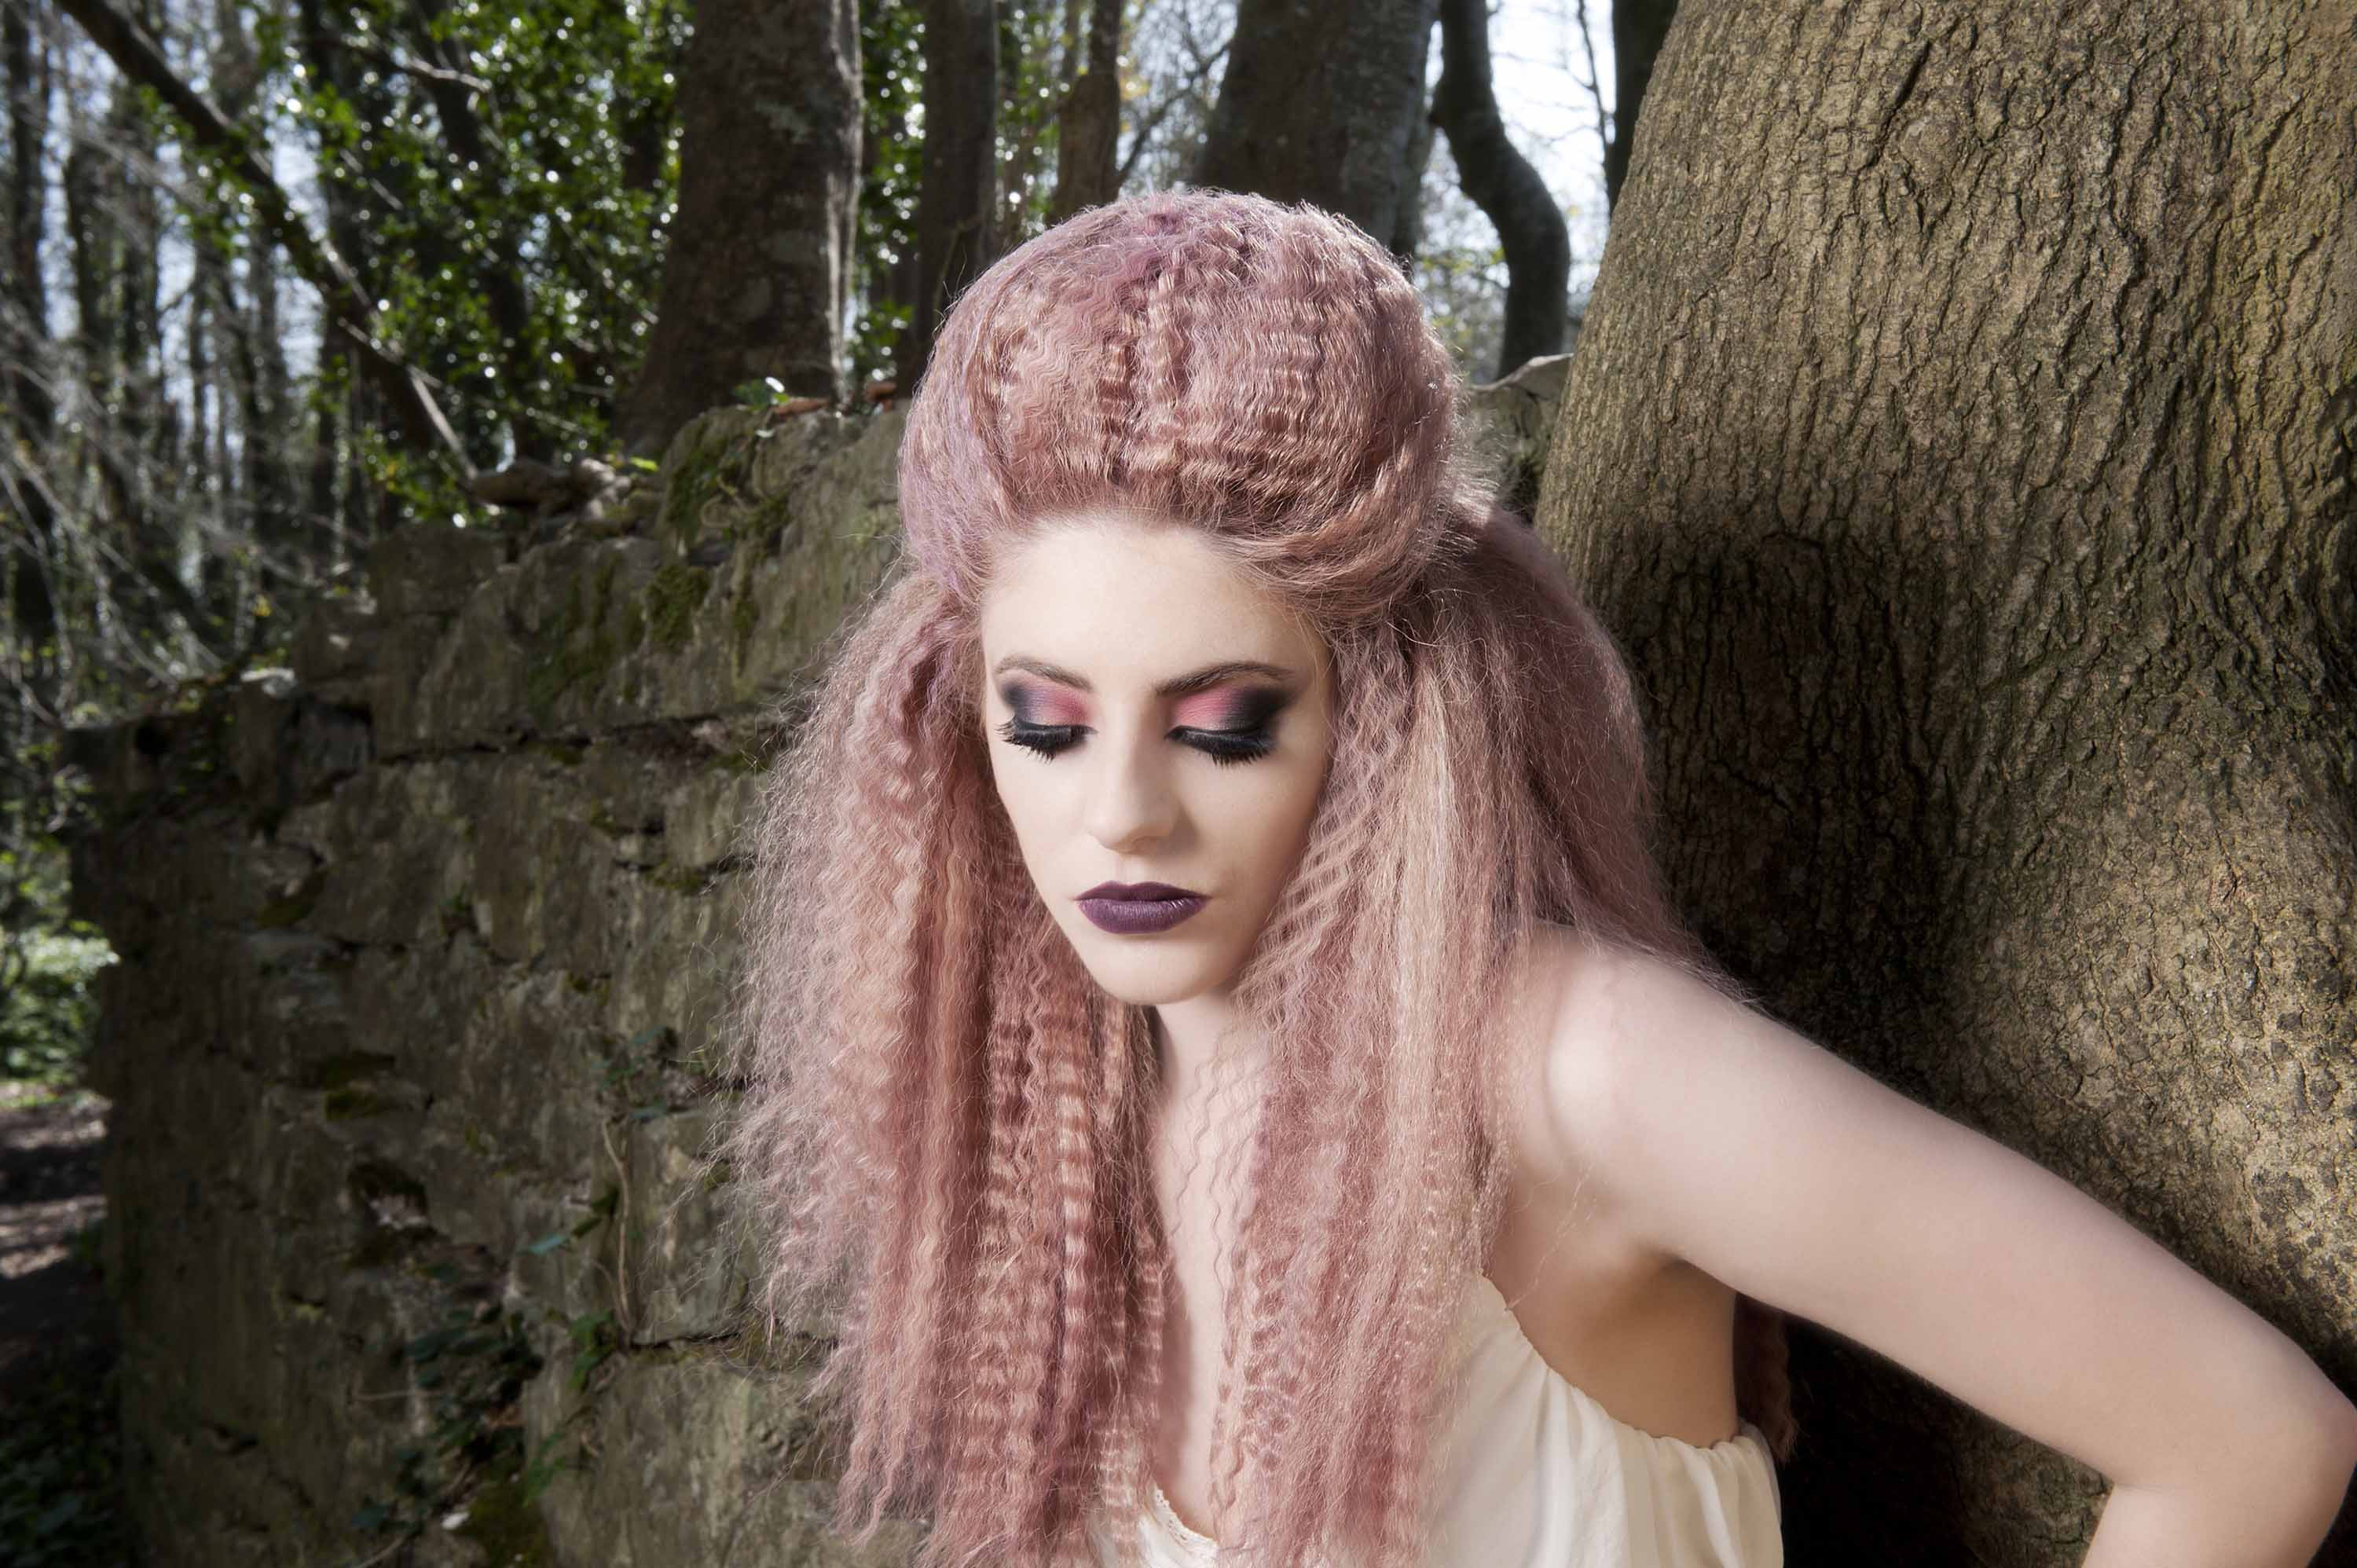 Best ideas about Halloween Hairstyles . Save or Pin 26 popular Halloween hairstyles that will make your night Now.